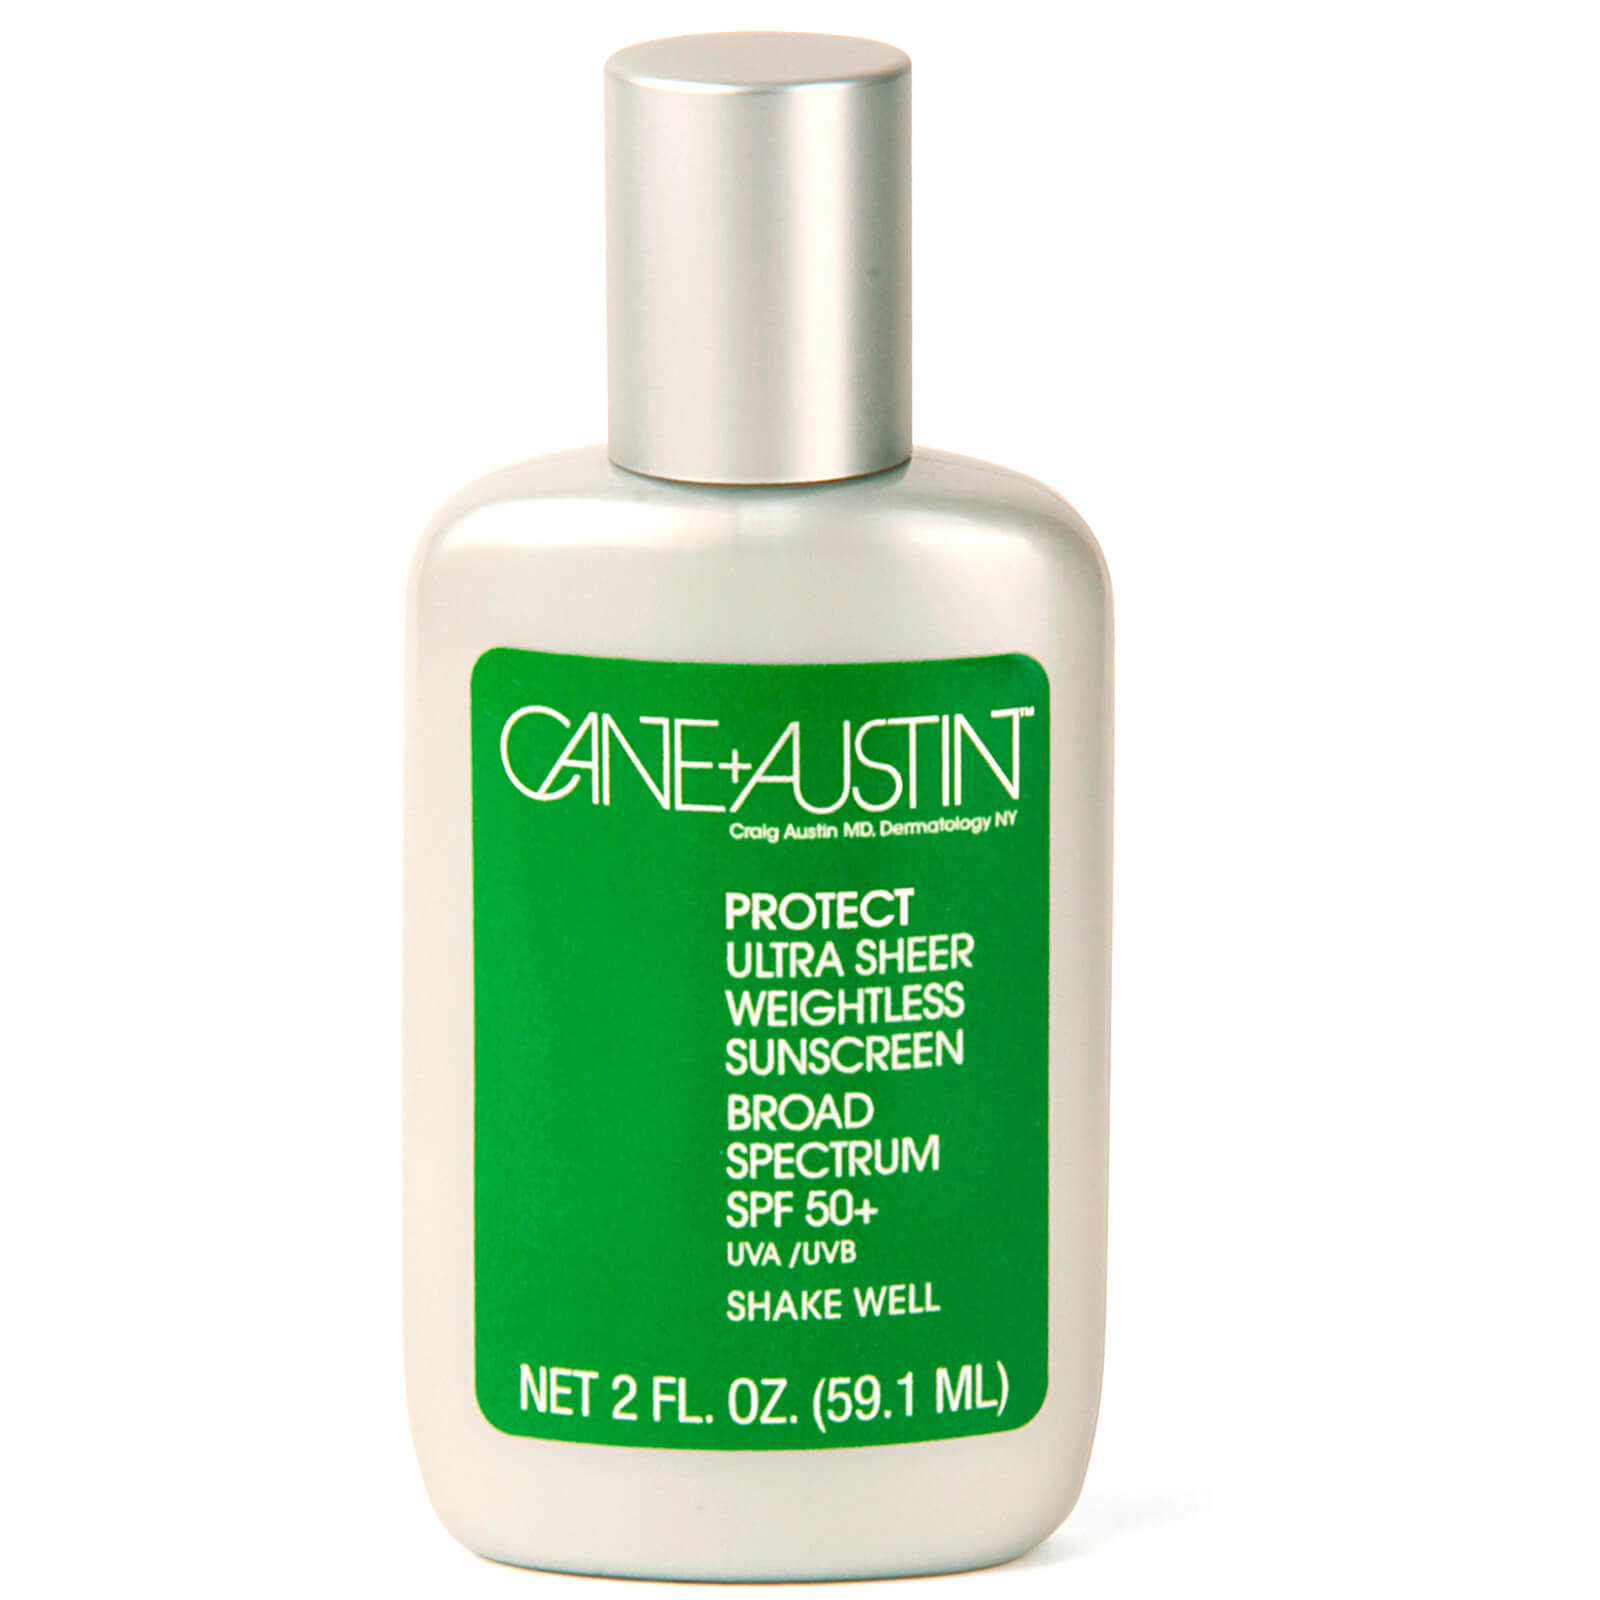 Cane and Austin Ultra Sheer Weightless Sunscreen SPF 50